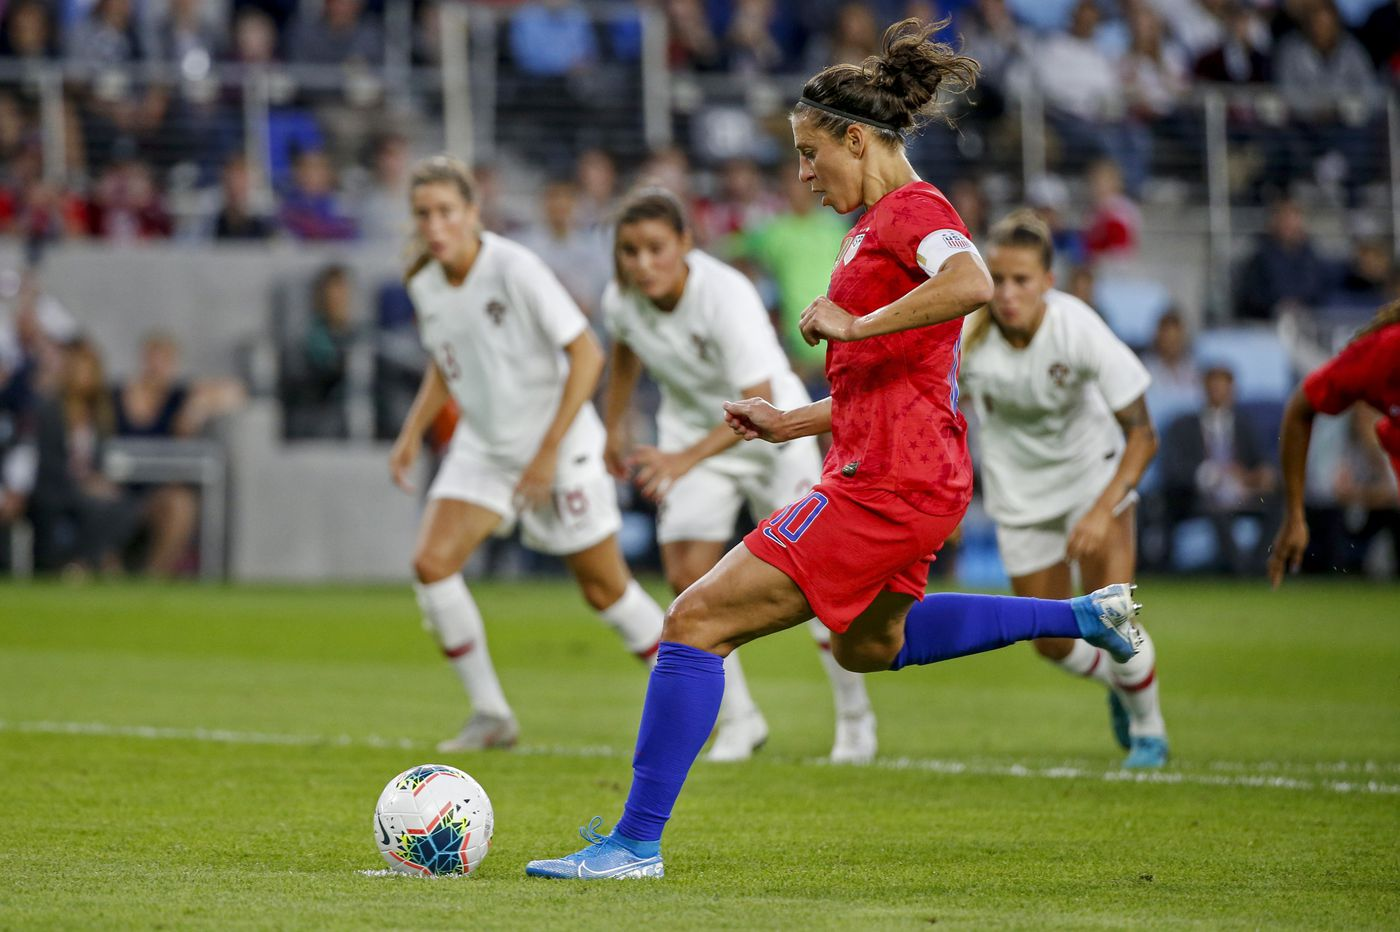 Carli Lloyd's goals, Kristen Hamilton's USWNT debut highlight 3-0 win over Portugal